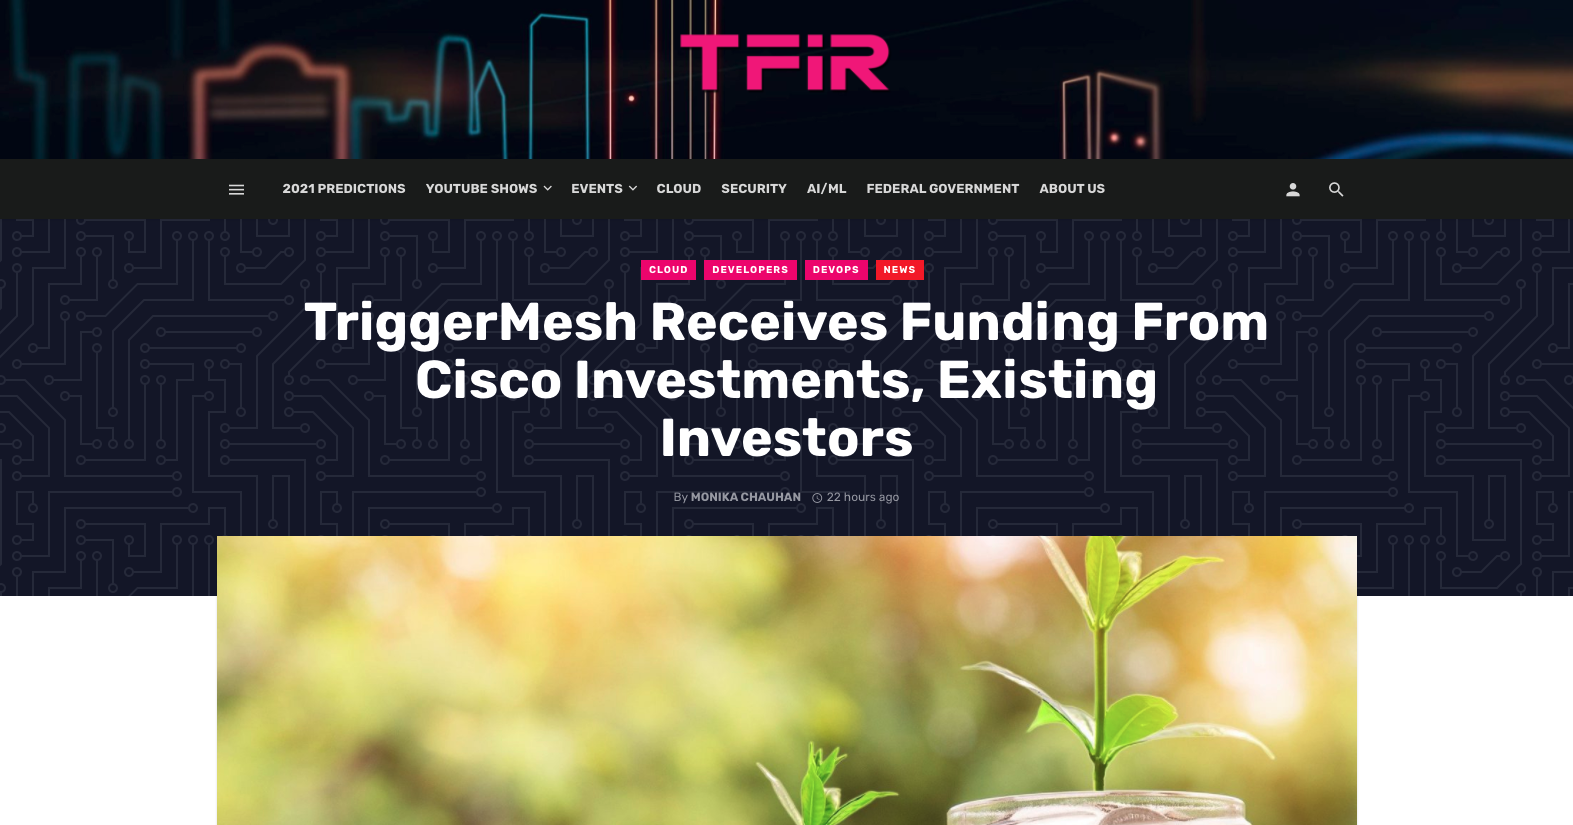 TFIR - TriggerMesh Receives Funding From Cisco Investments, Existing Investors